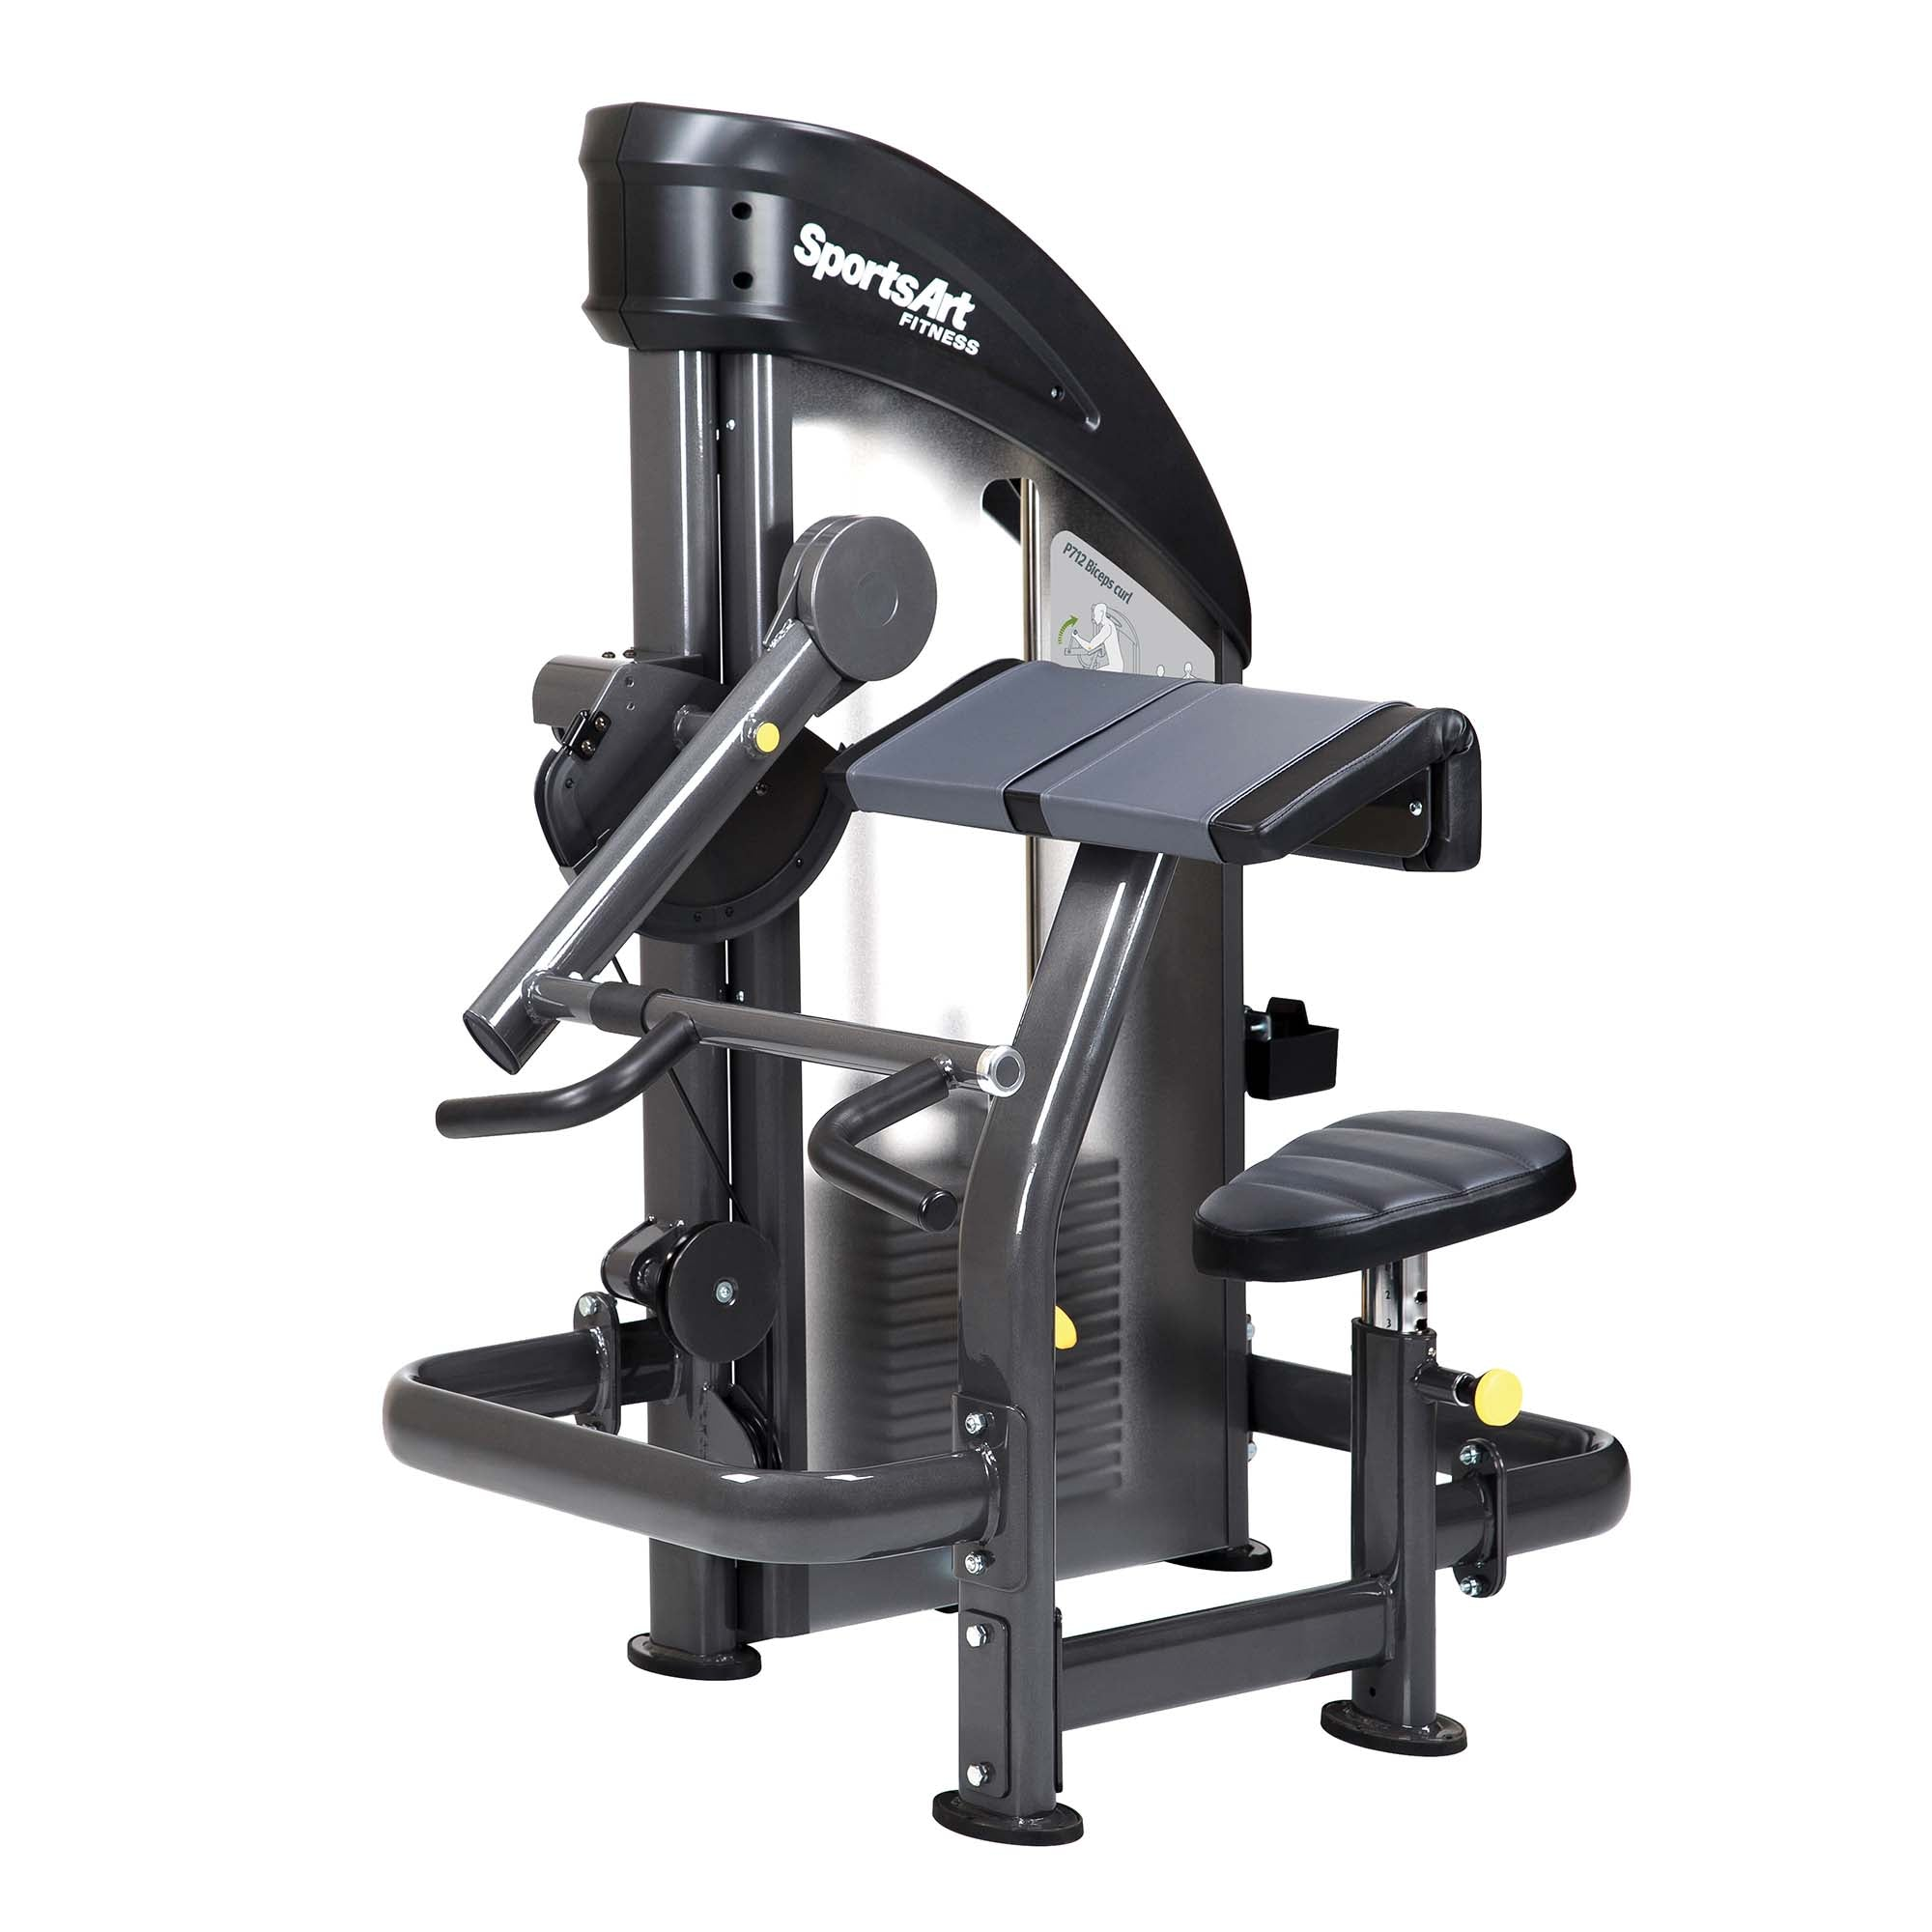 SportsArt P712 PERFORMANCE BICEPS CURL